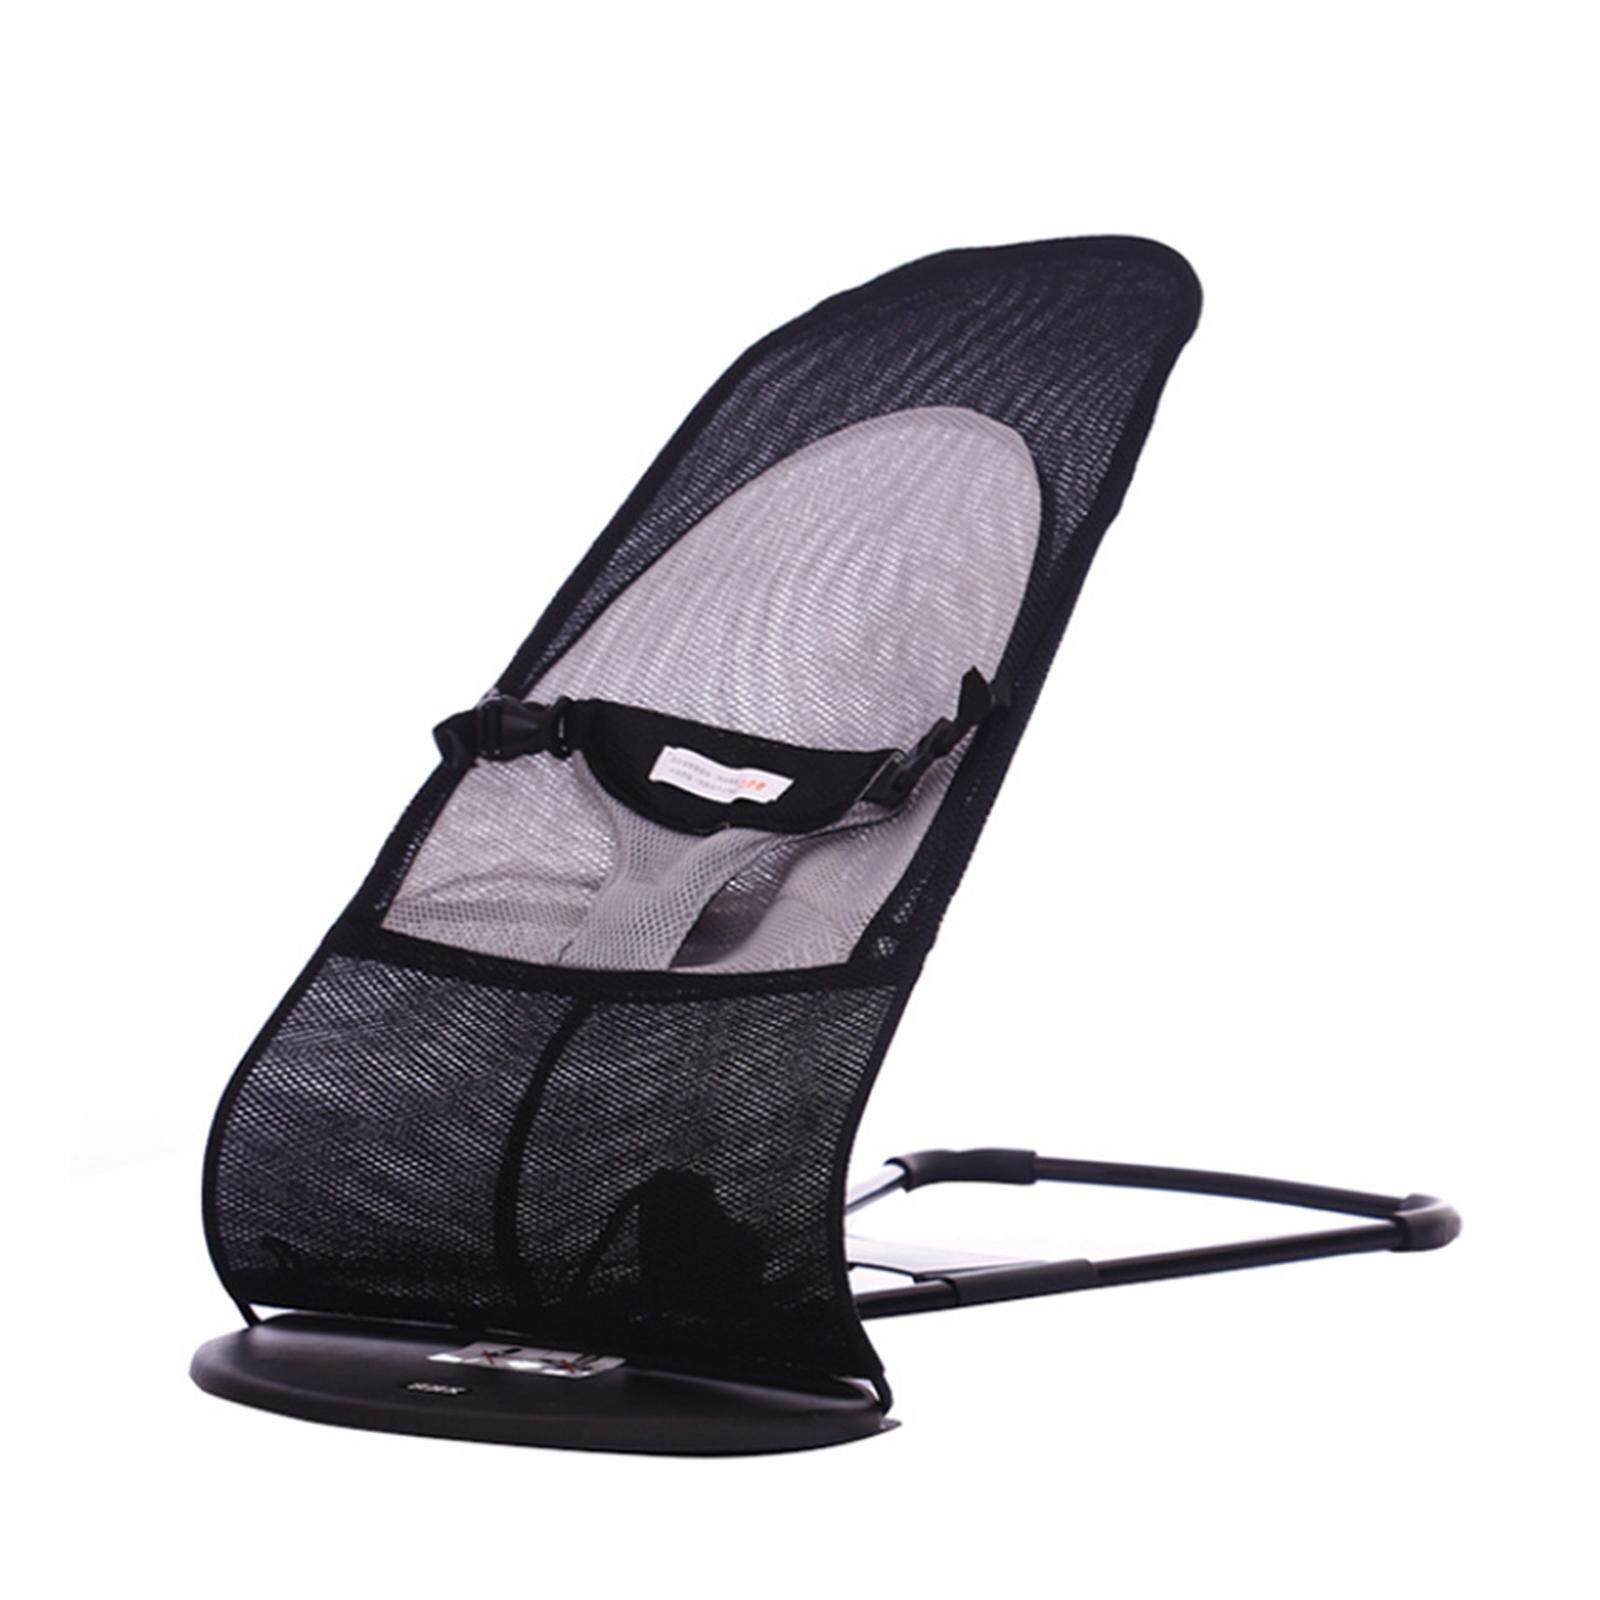 NaVa Cooling Large Baby Bouncer Adjustable Sleeping Kit with Safefty Belt